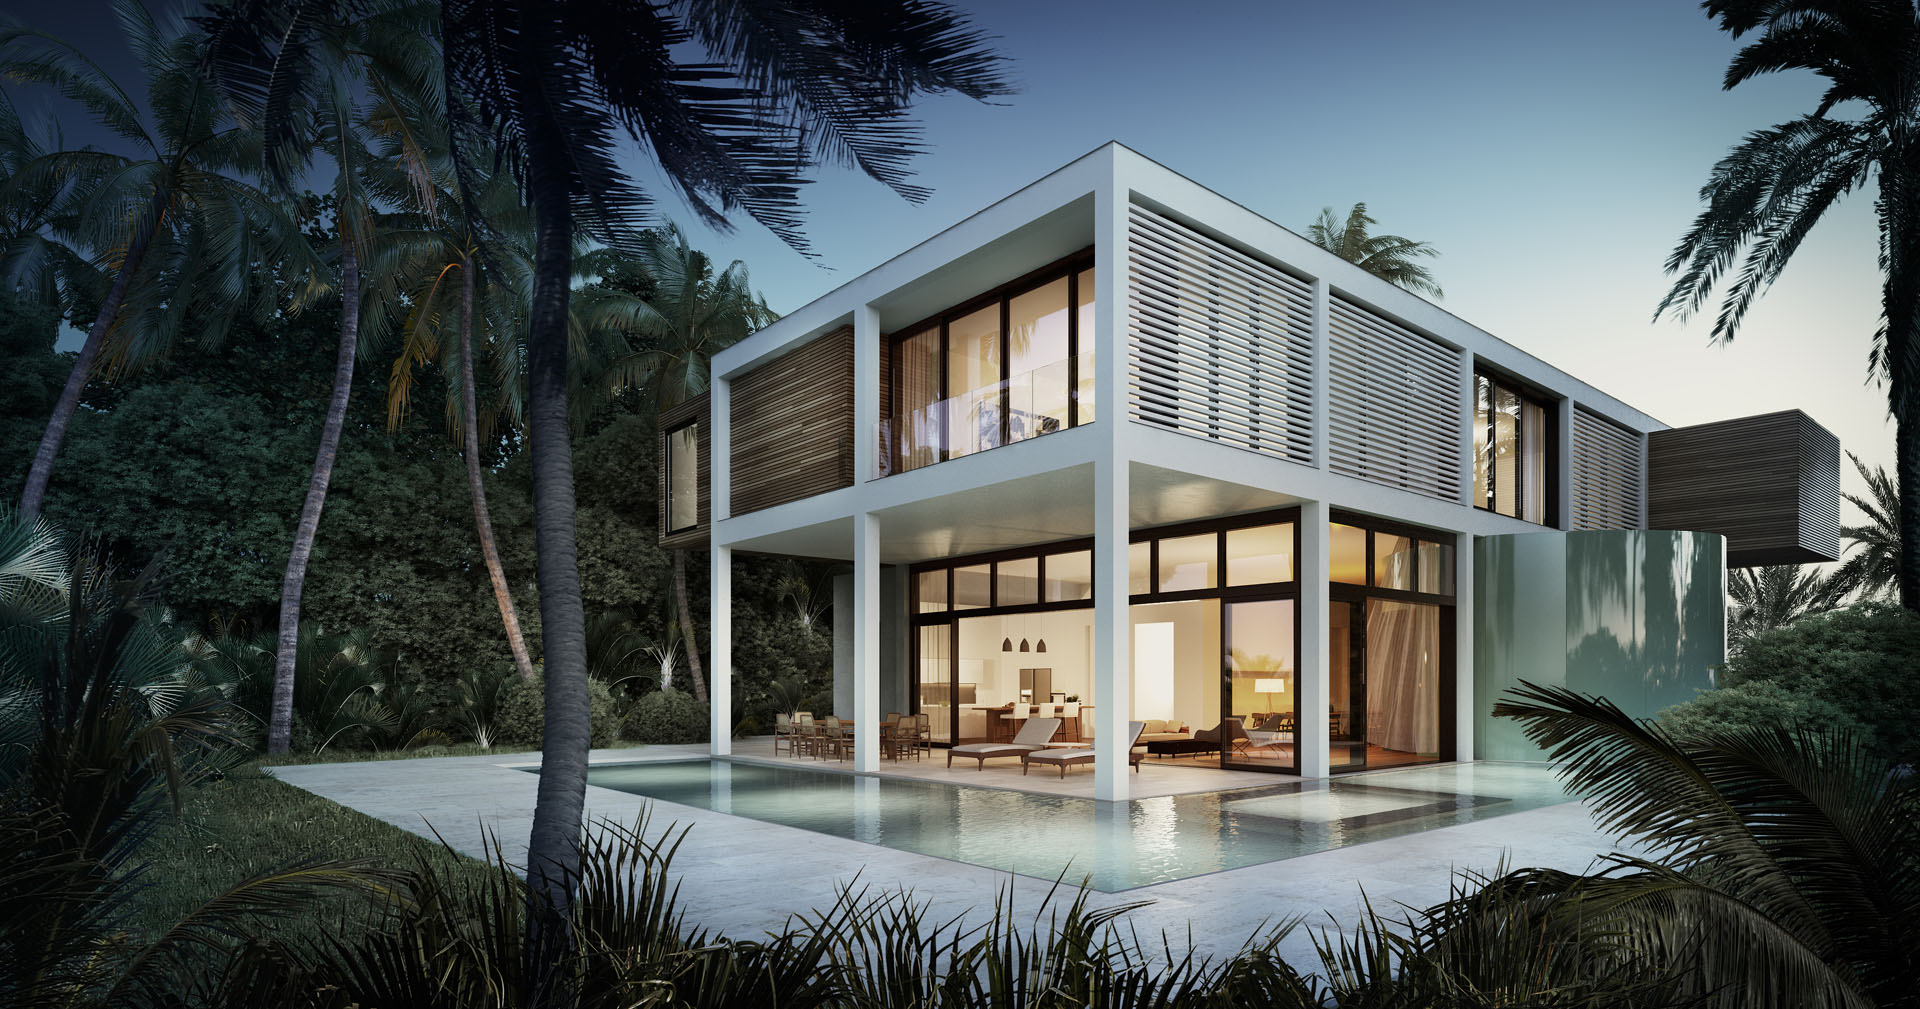 Home miami golden properties jacob abramson miami for Golden beach design